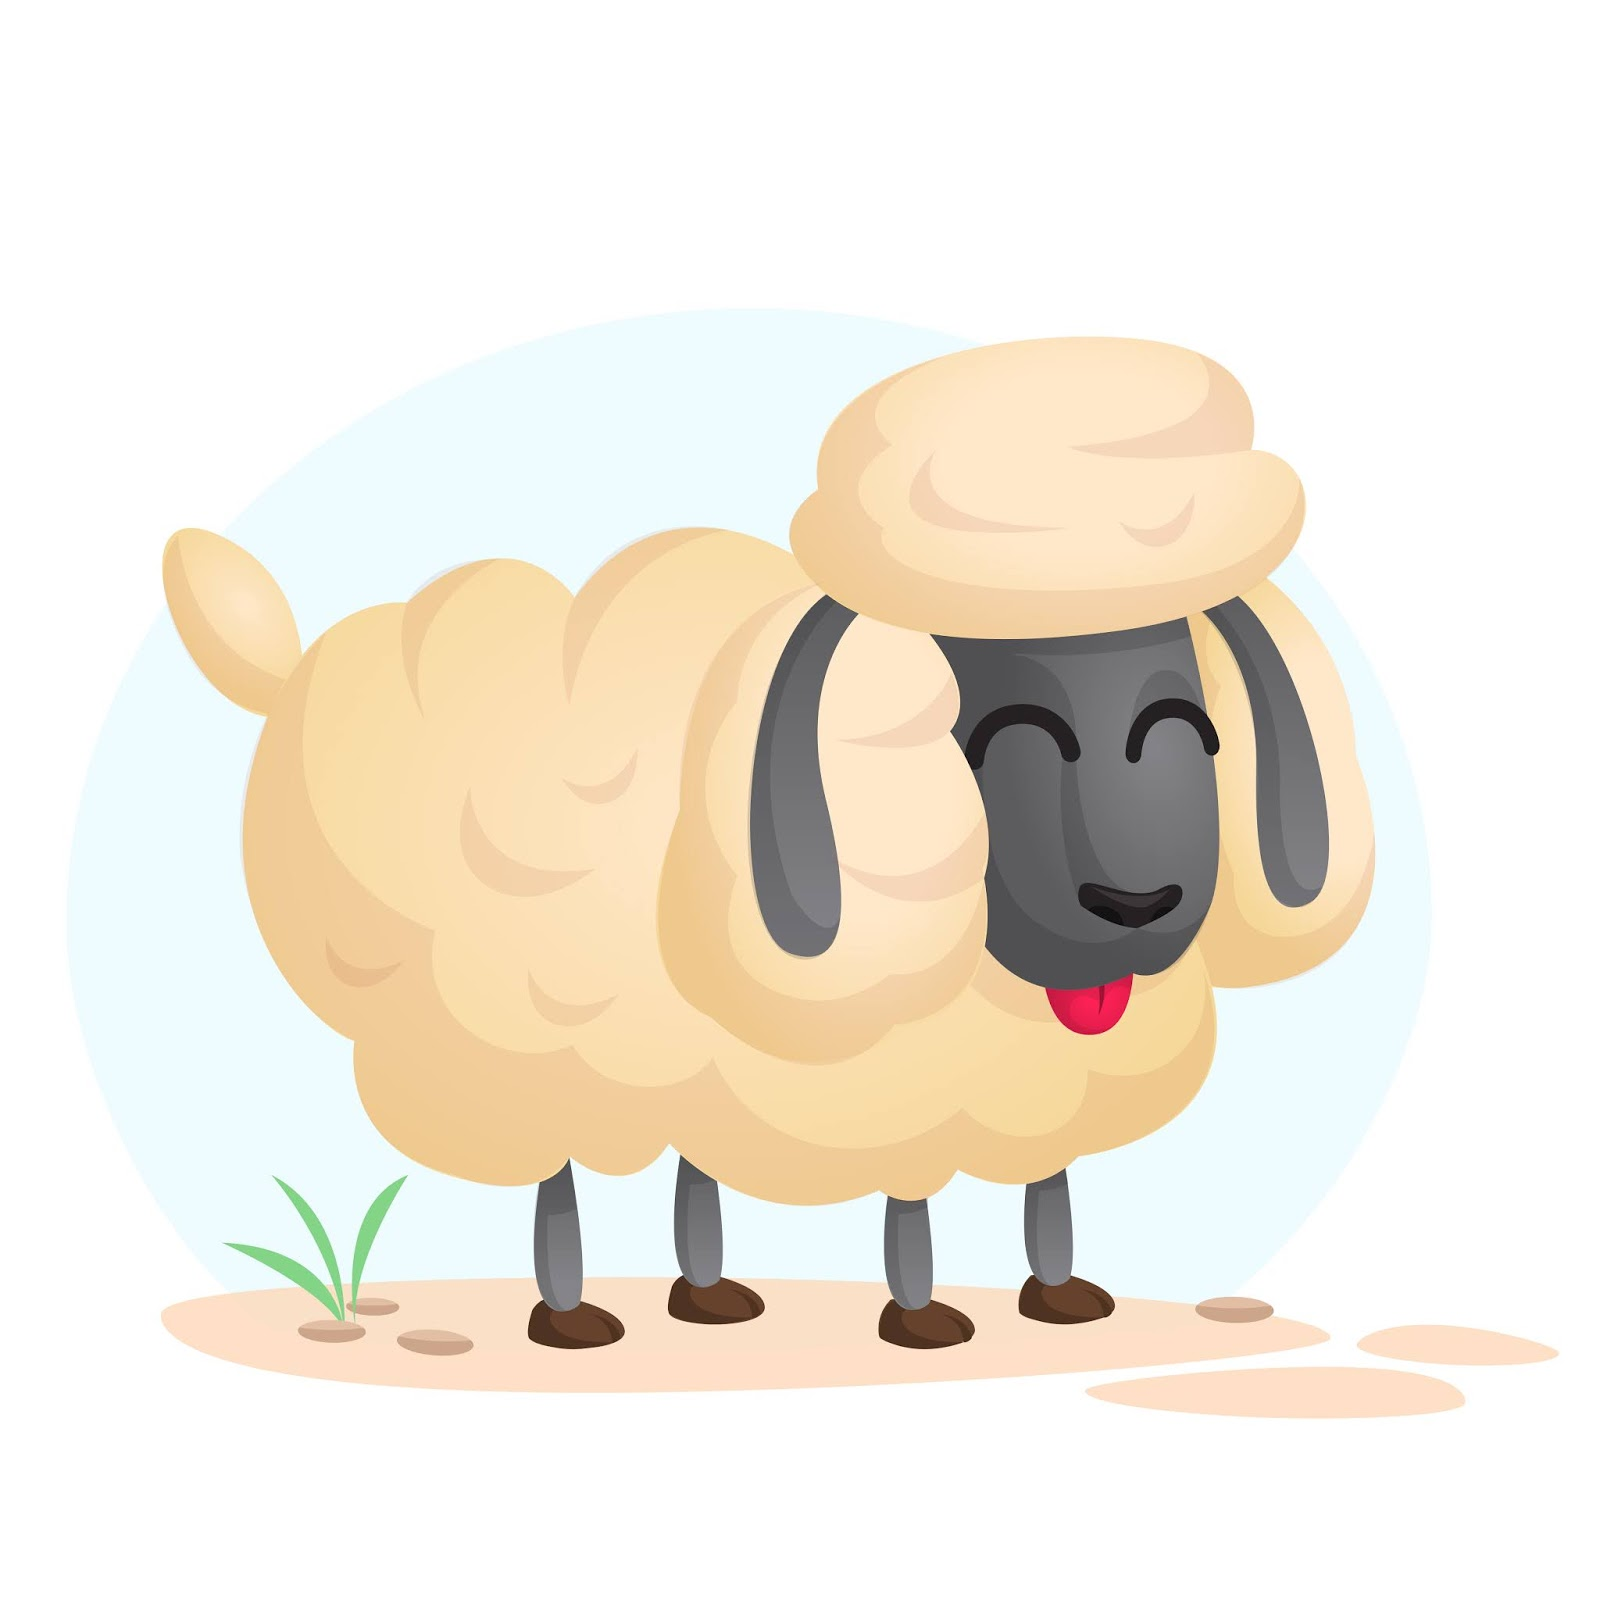 Sheep Free Download Vector CDR, AI, EPS and PNG Formats